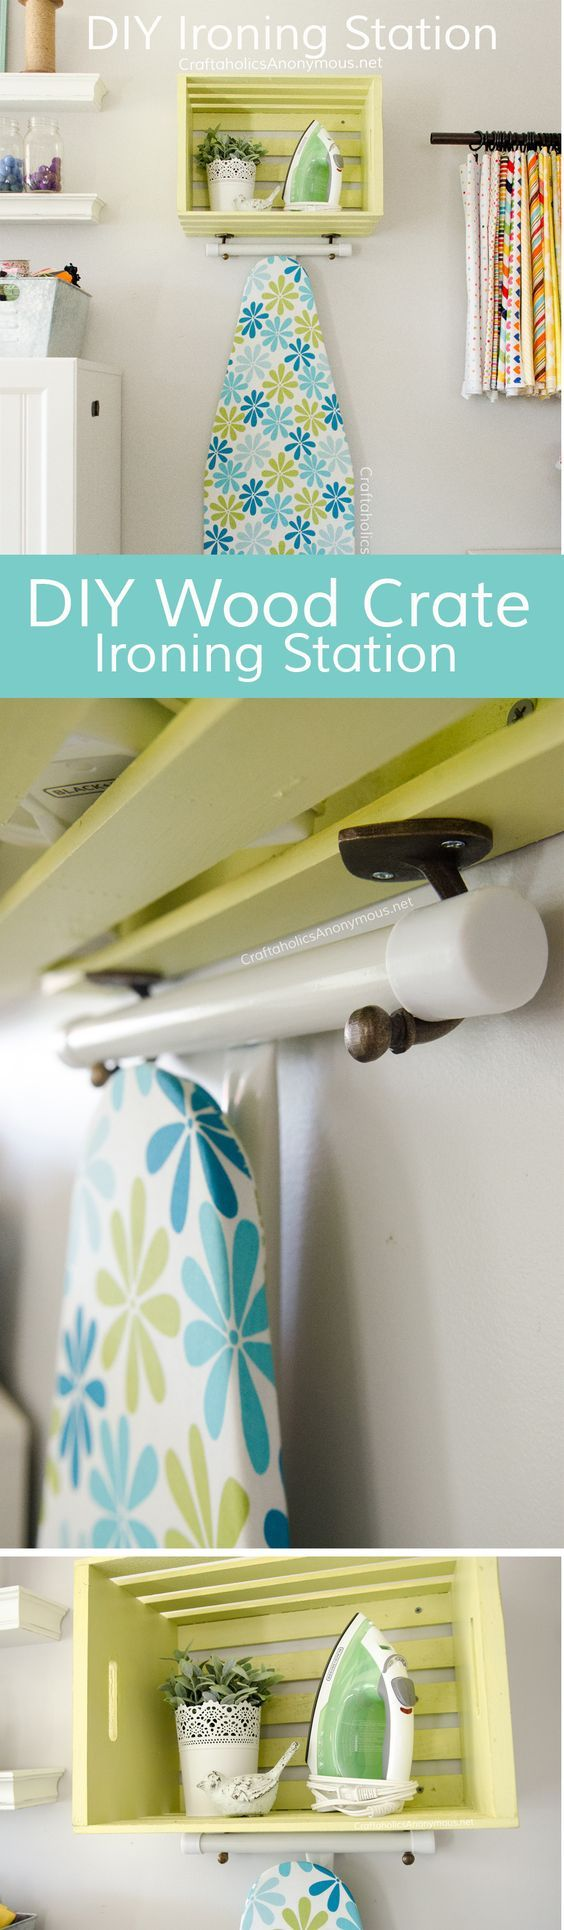 This project helps organization to your iron. It such a fun tutorial and would spice up the decor!